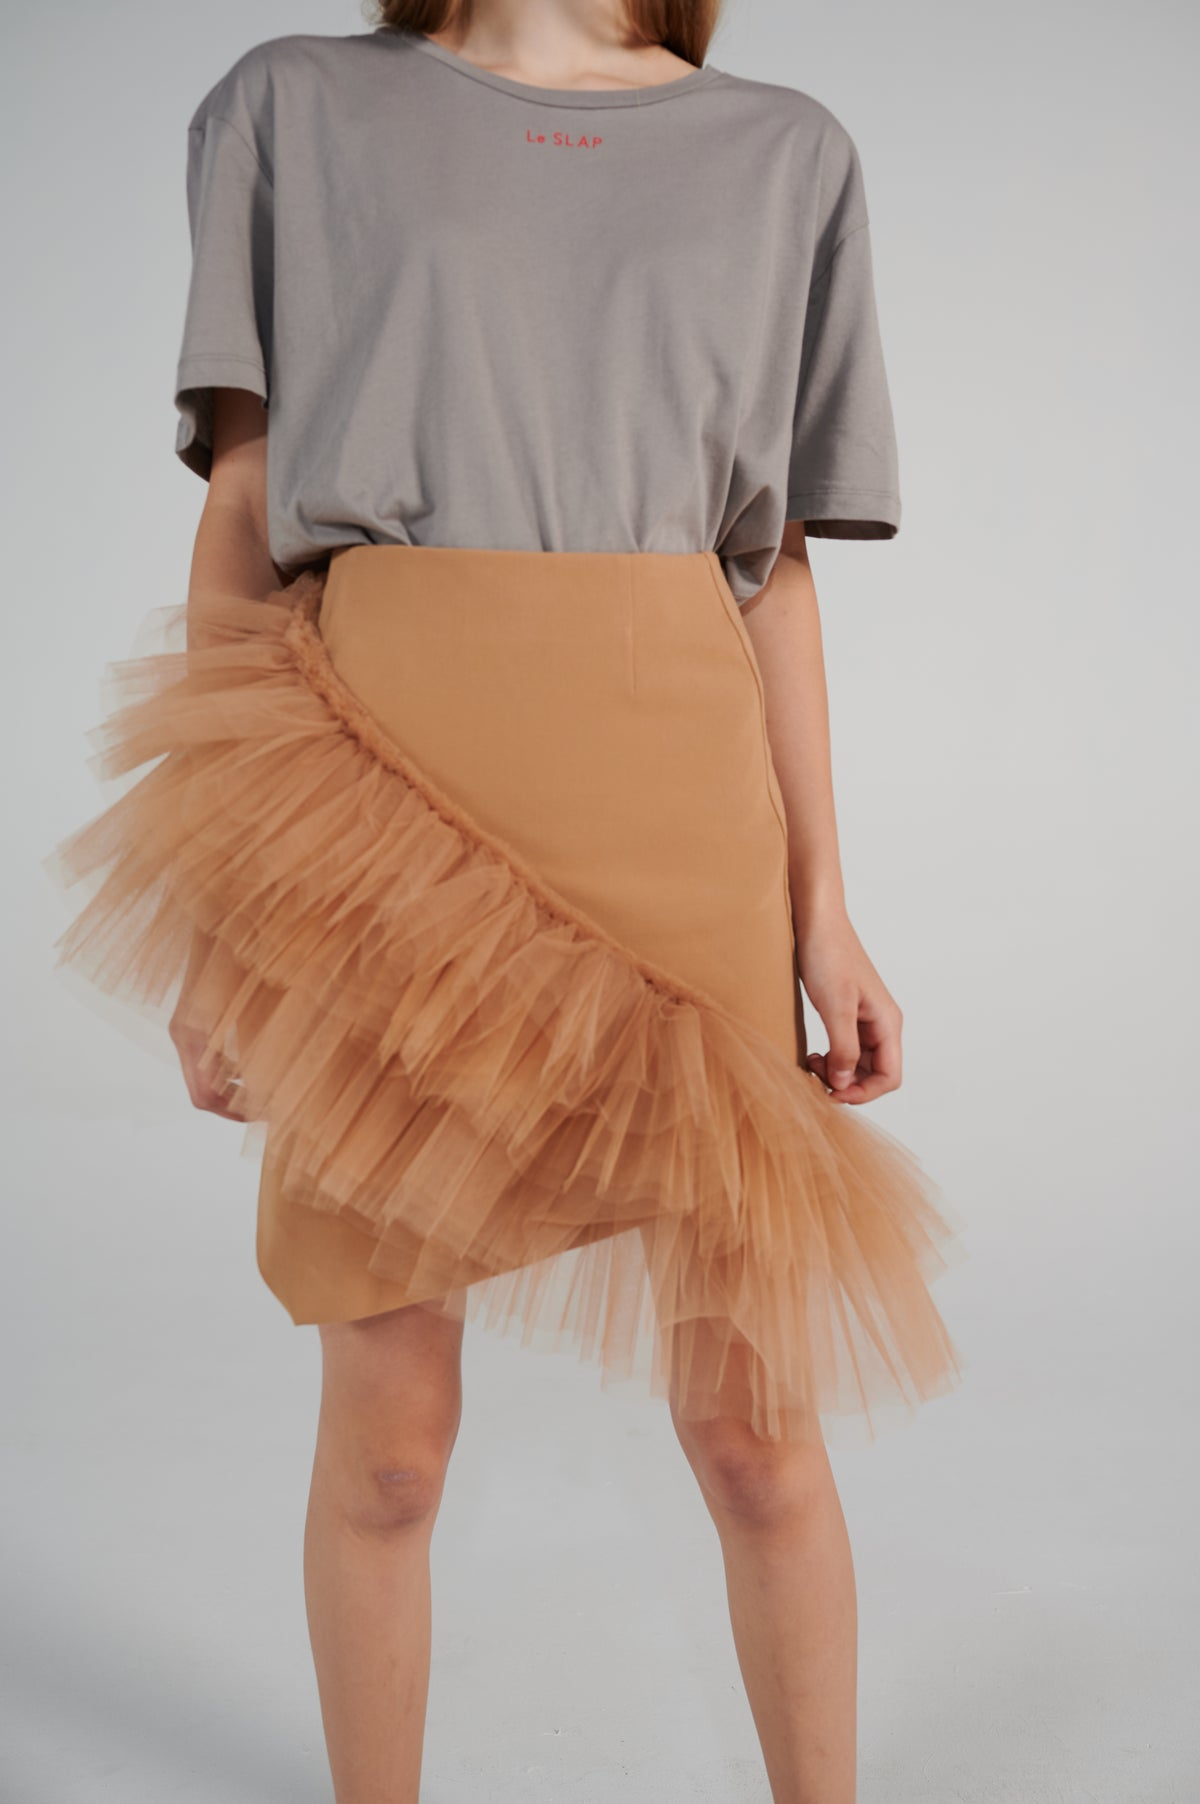 black-swan-drape-tulle-skirt-nude-lookbook-photoshoot-le-slap.jpg